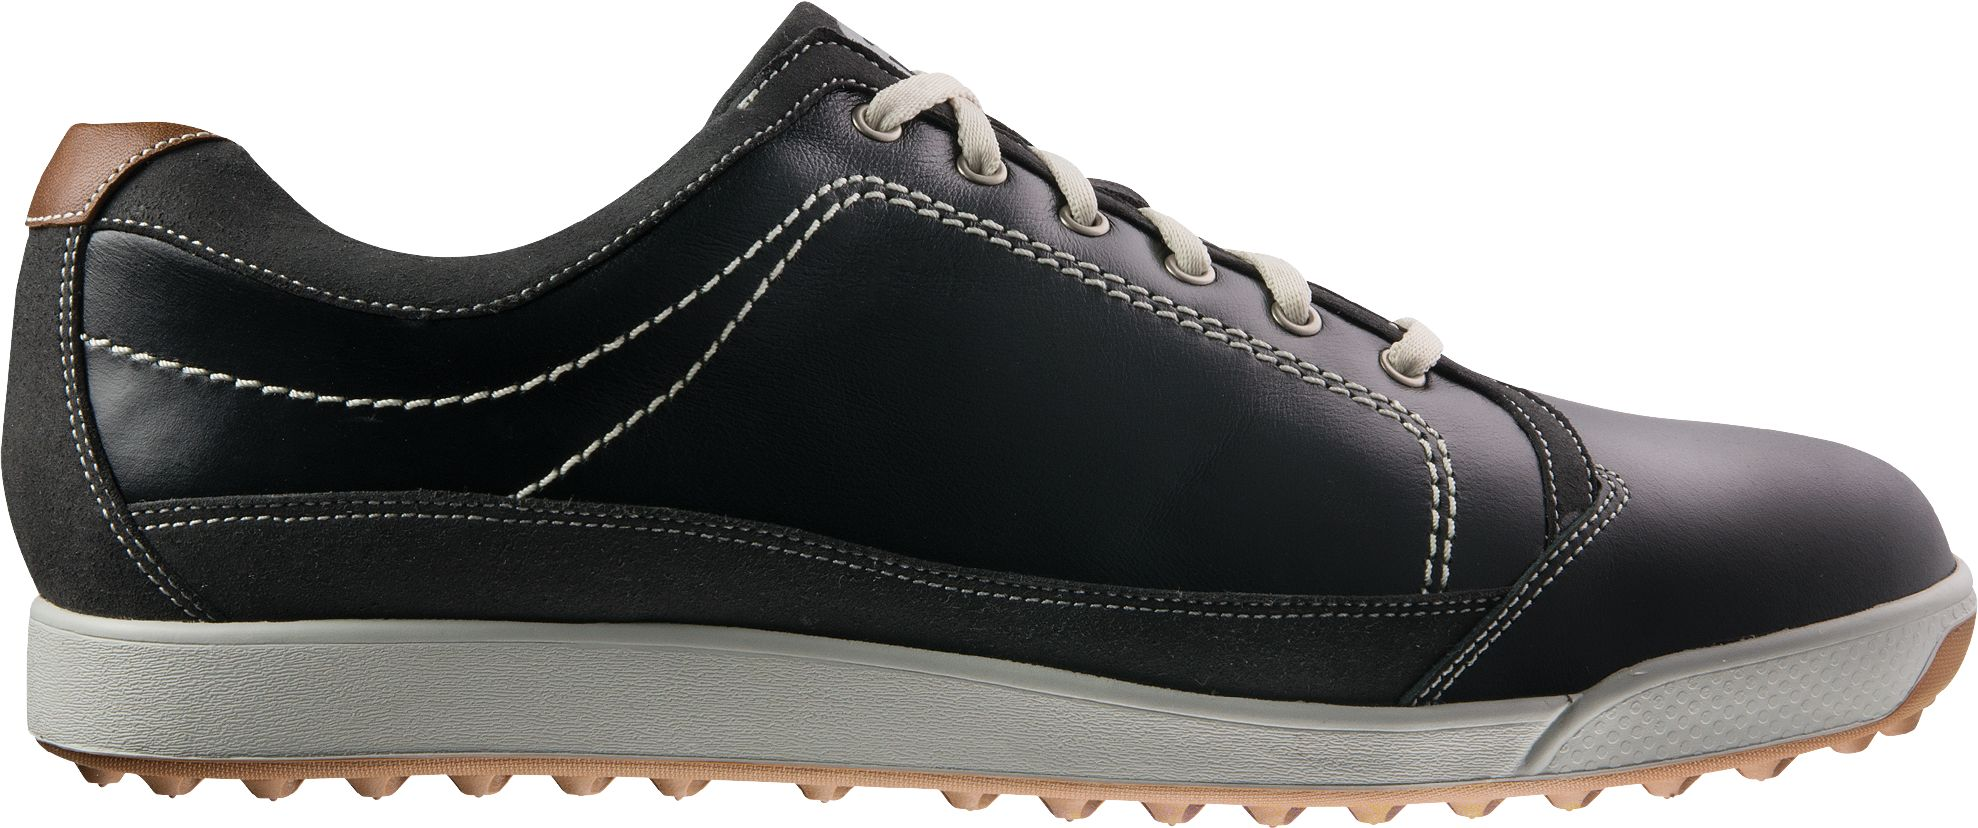 FootJoy Contour Casual Golf Shoes (Closeout)